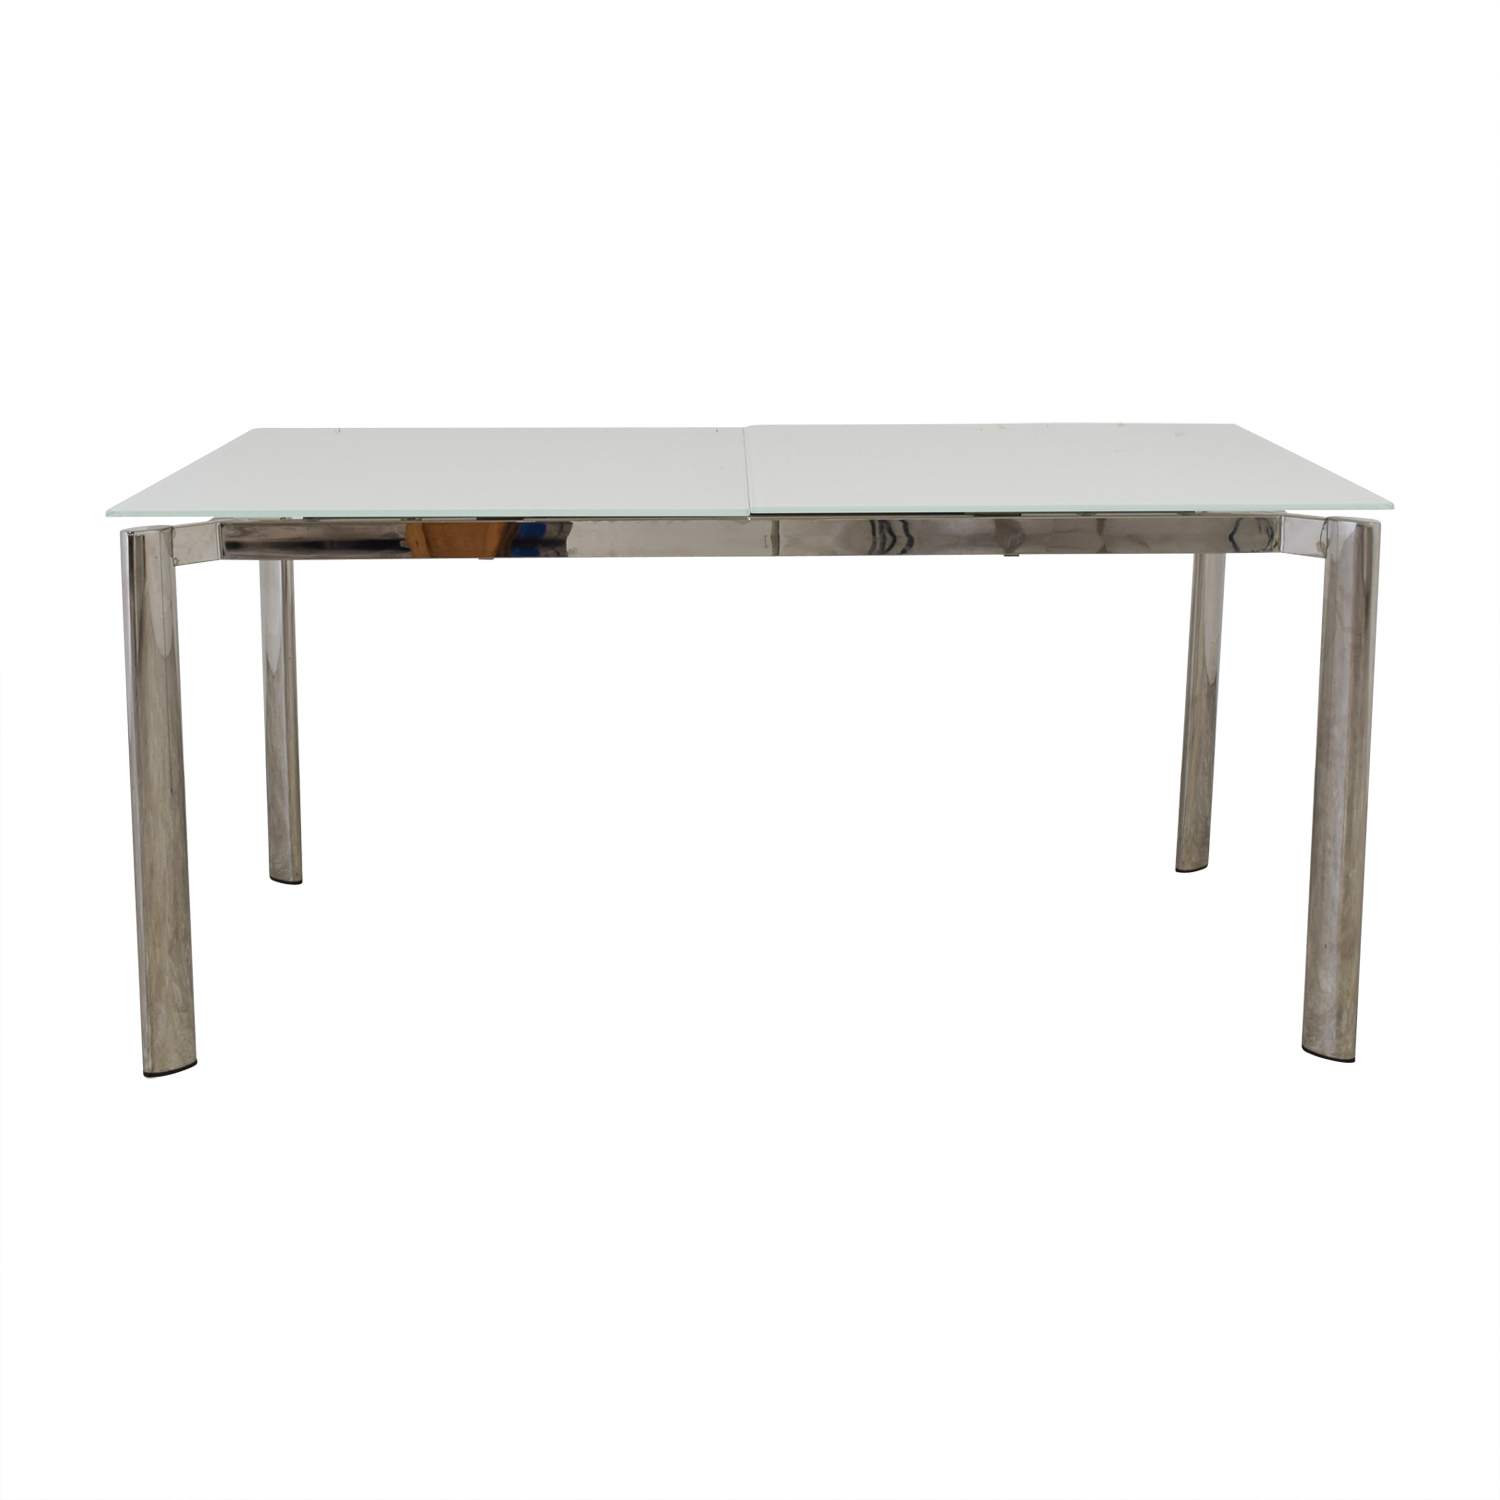 Modani Modani Expandable White Glass and Chrome Dining Table discount